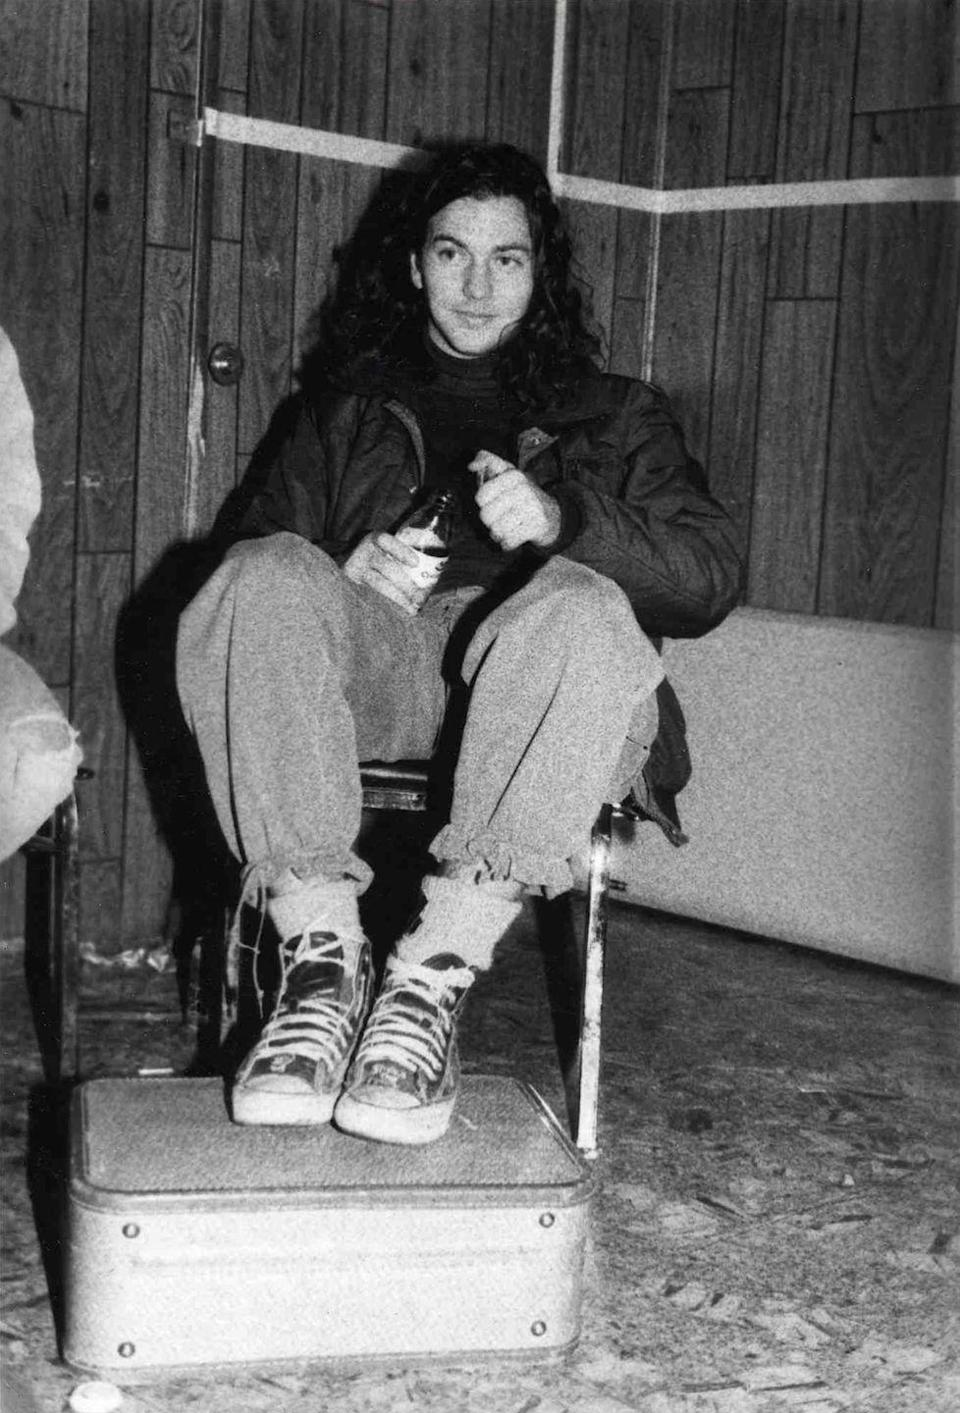 <p>Eddie Vedder backstage during Rock for Choice concert at The Hollywood Palladium on January 23, 1993 in Los Angeles.</p>